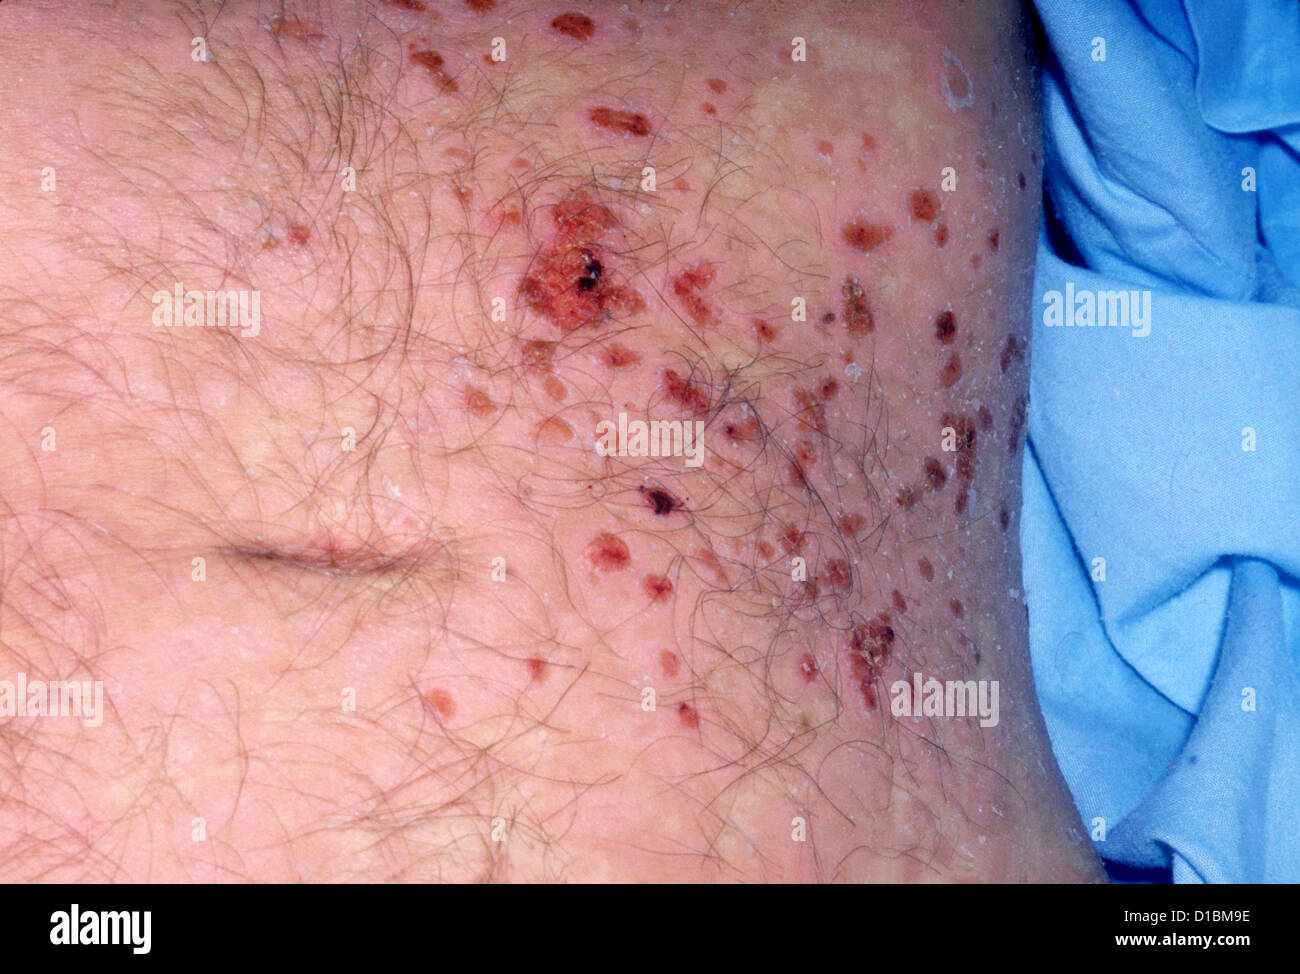 HERPES ZOSTER Foto Stock